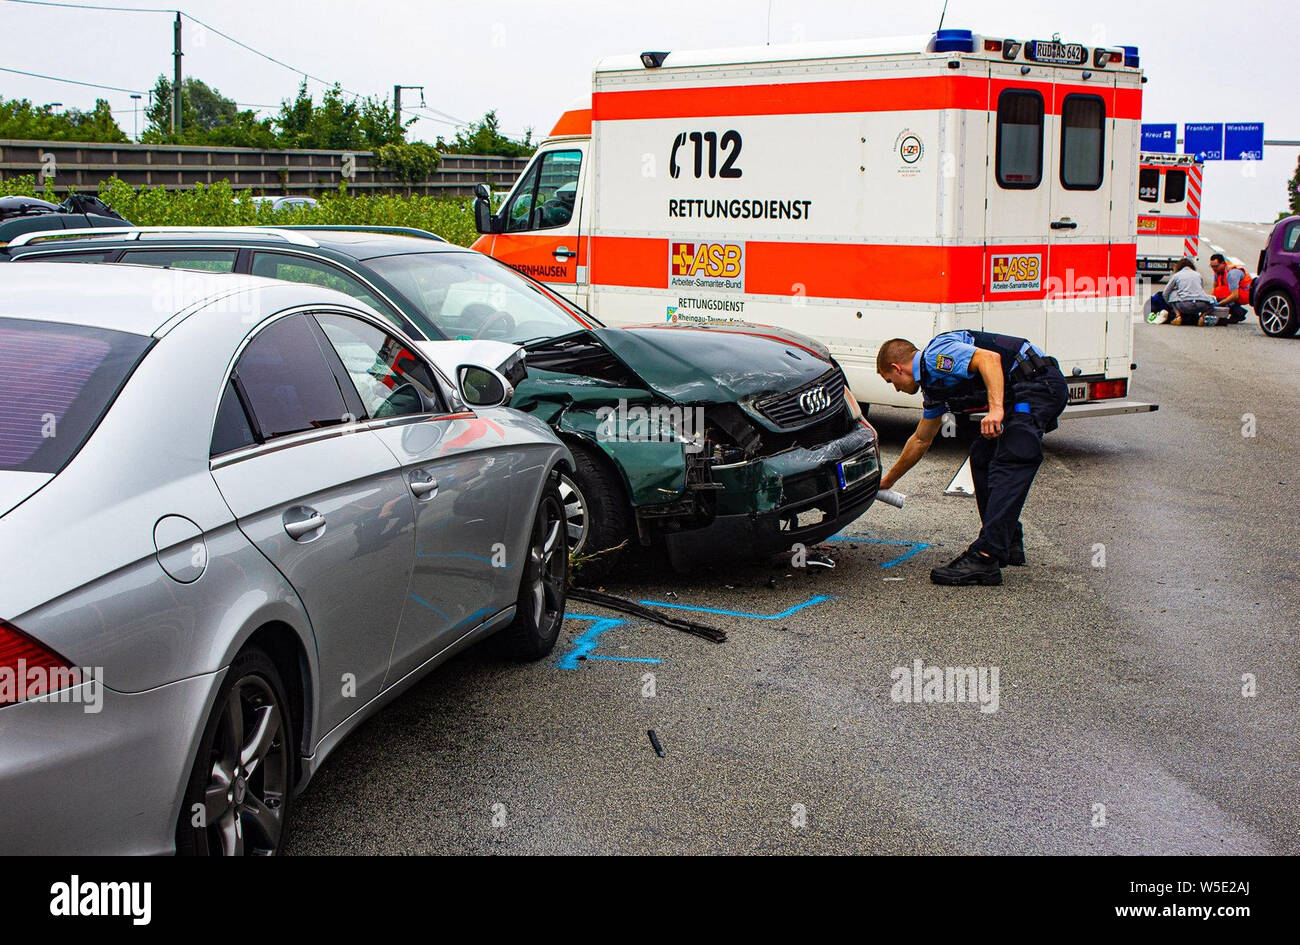 Accident Witnesses Stock Photos & Accident Witnesses Stock Images